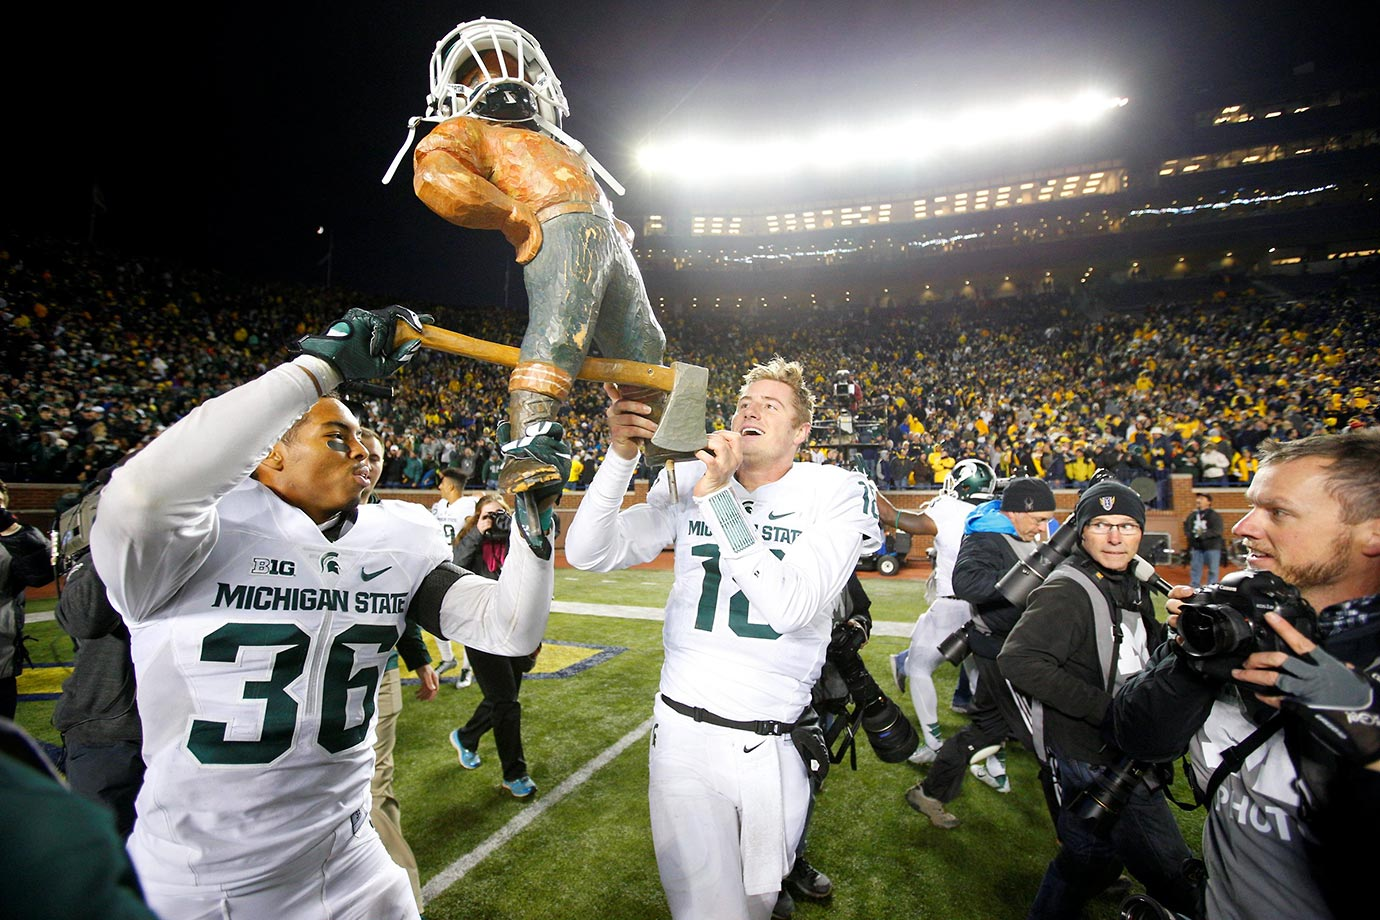 Arjen Colquhoun and Connor Cook of Michigan State hoist the the Paul Bunyan Trophy after beating Michigan.